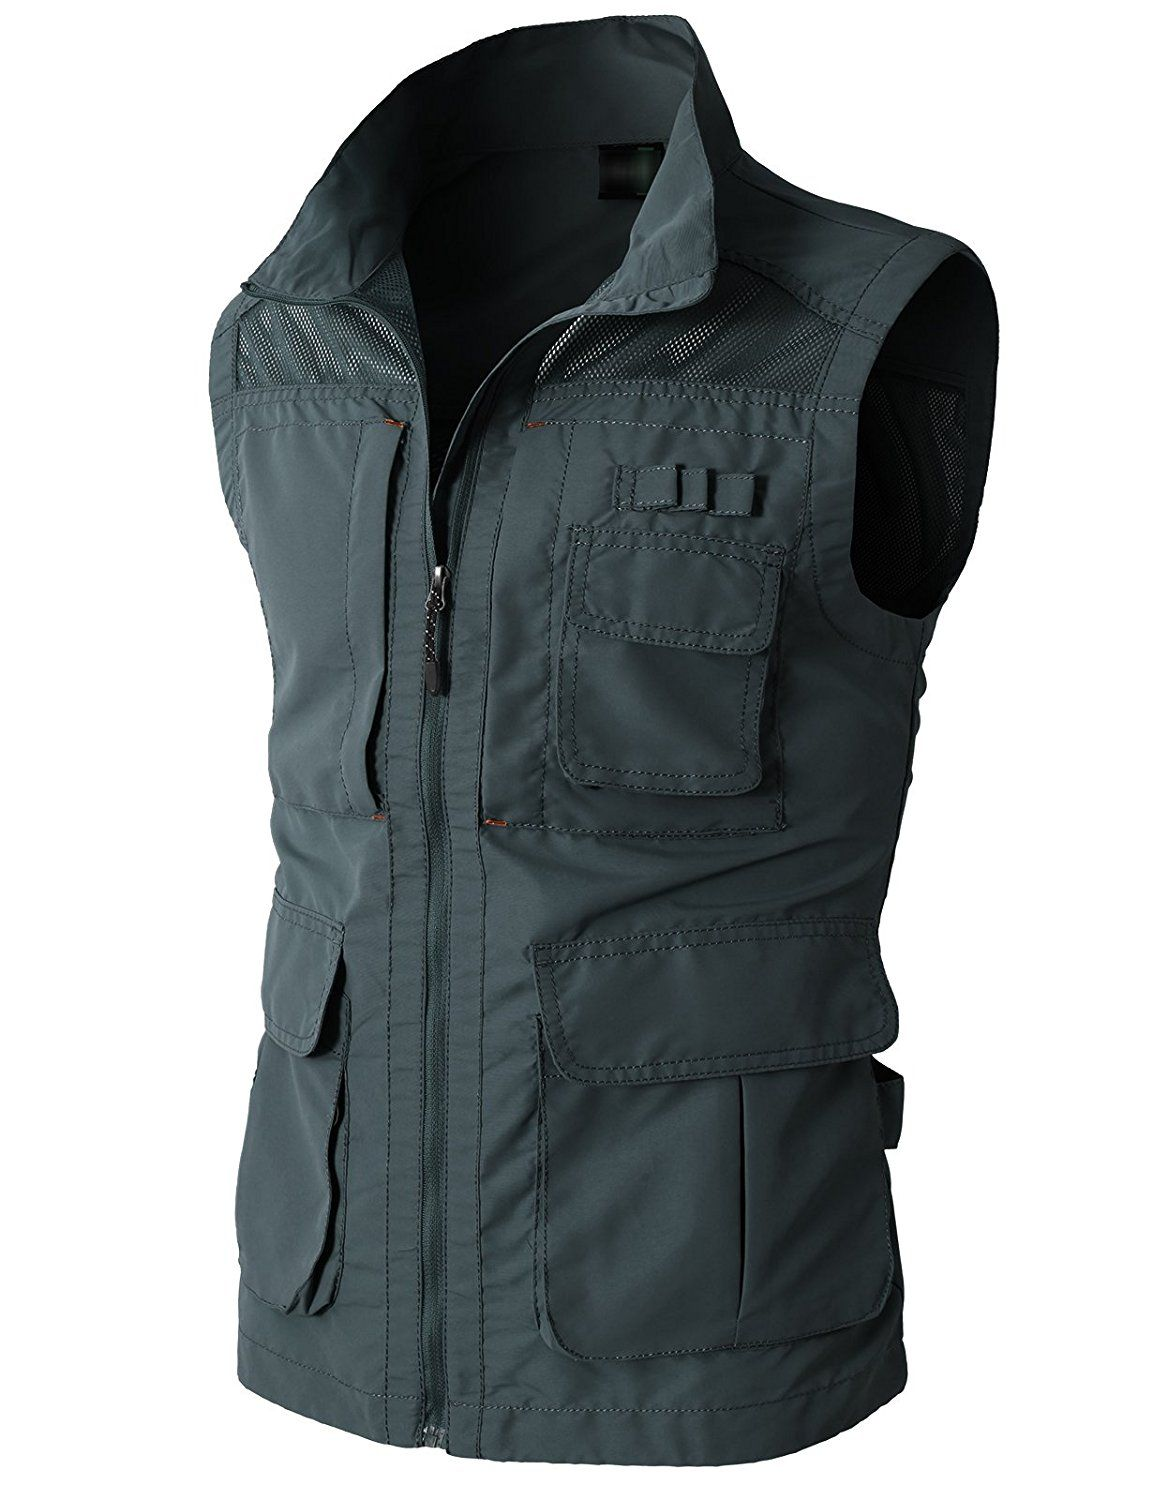 Amazon.com: H2H Mens Casual Work Utility Hunting Travels Sports Vest With  Multiple Pockets